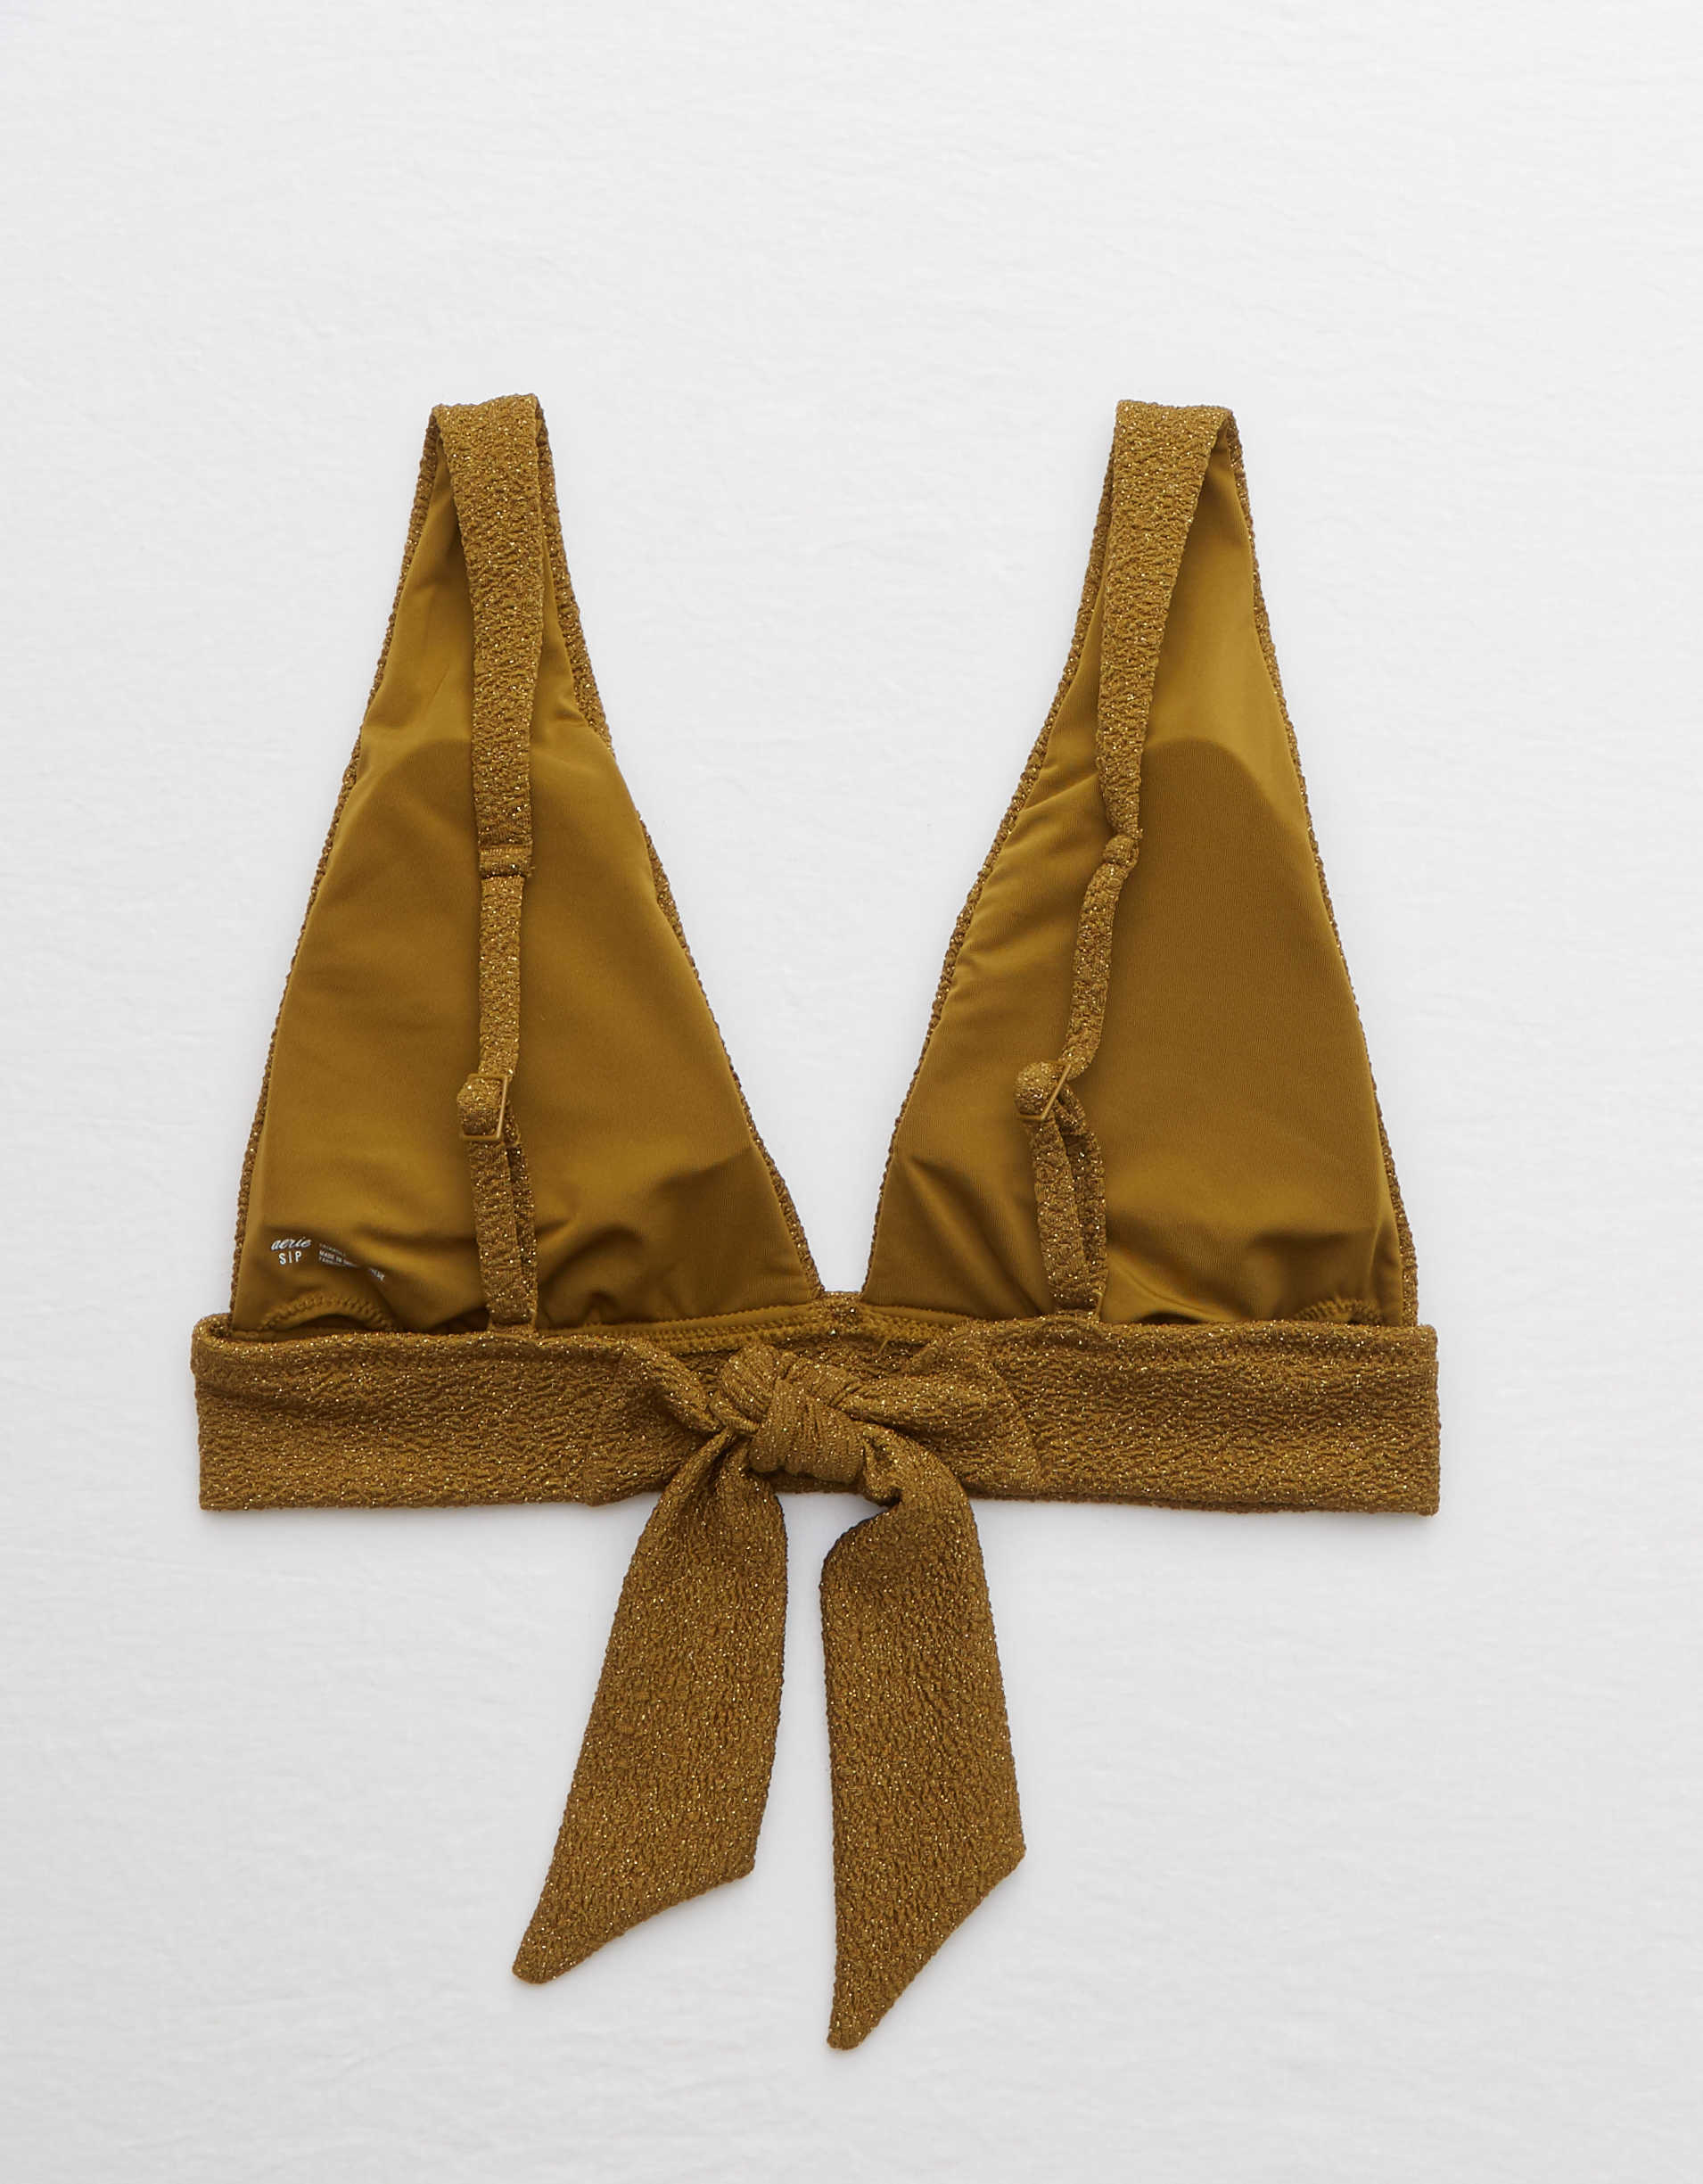 Aerie Shine Tie Longline Triangle Bikini Top